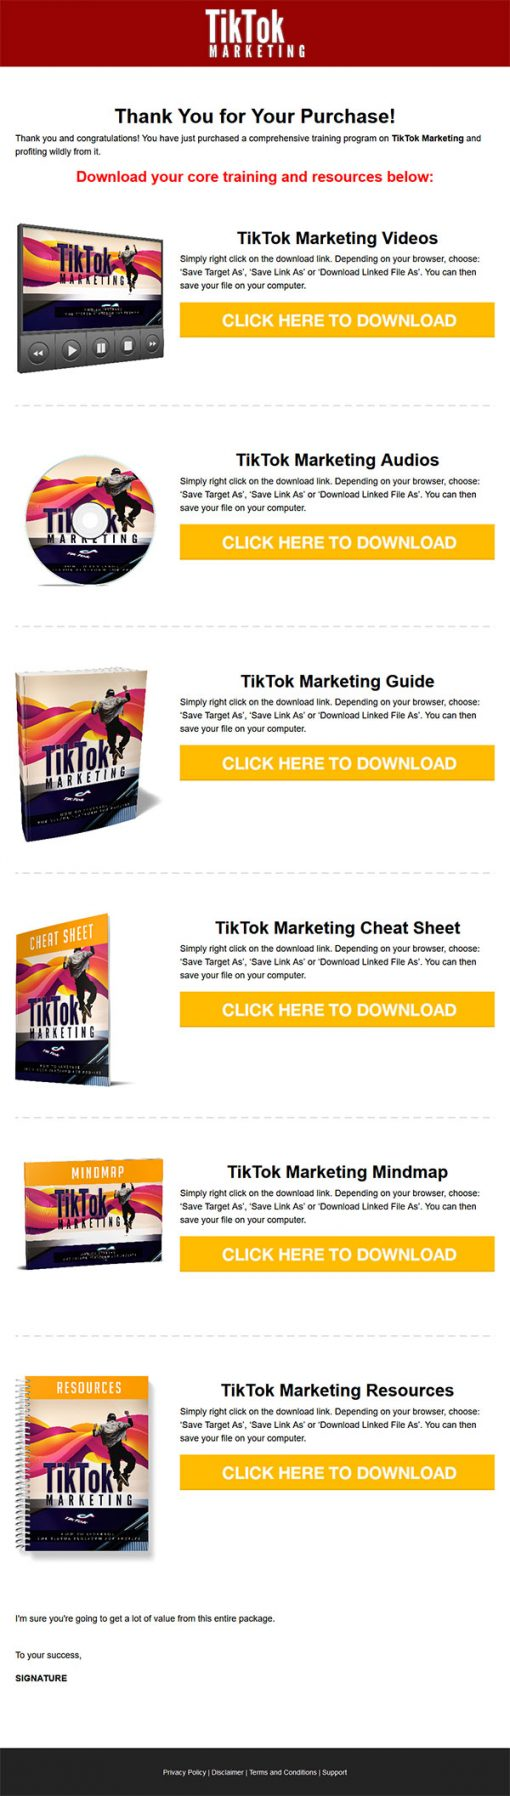 Tik Tok Marketing Ebook and Videos MRR